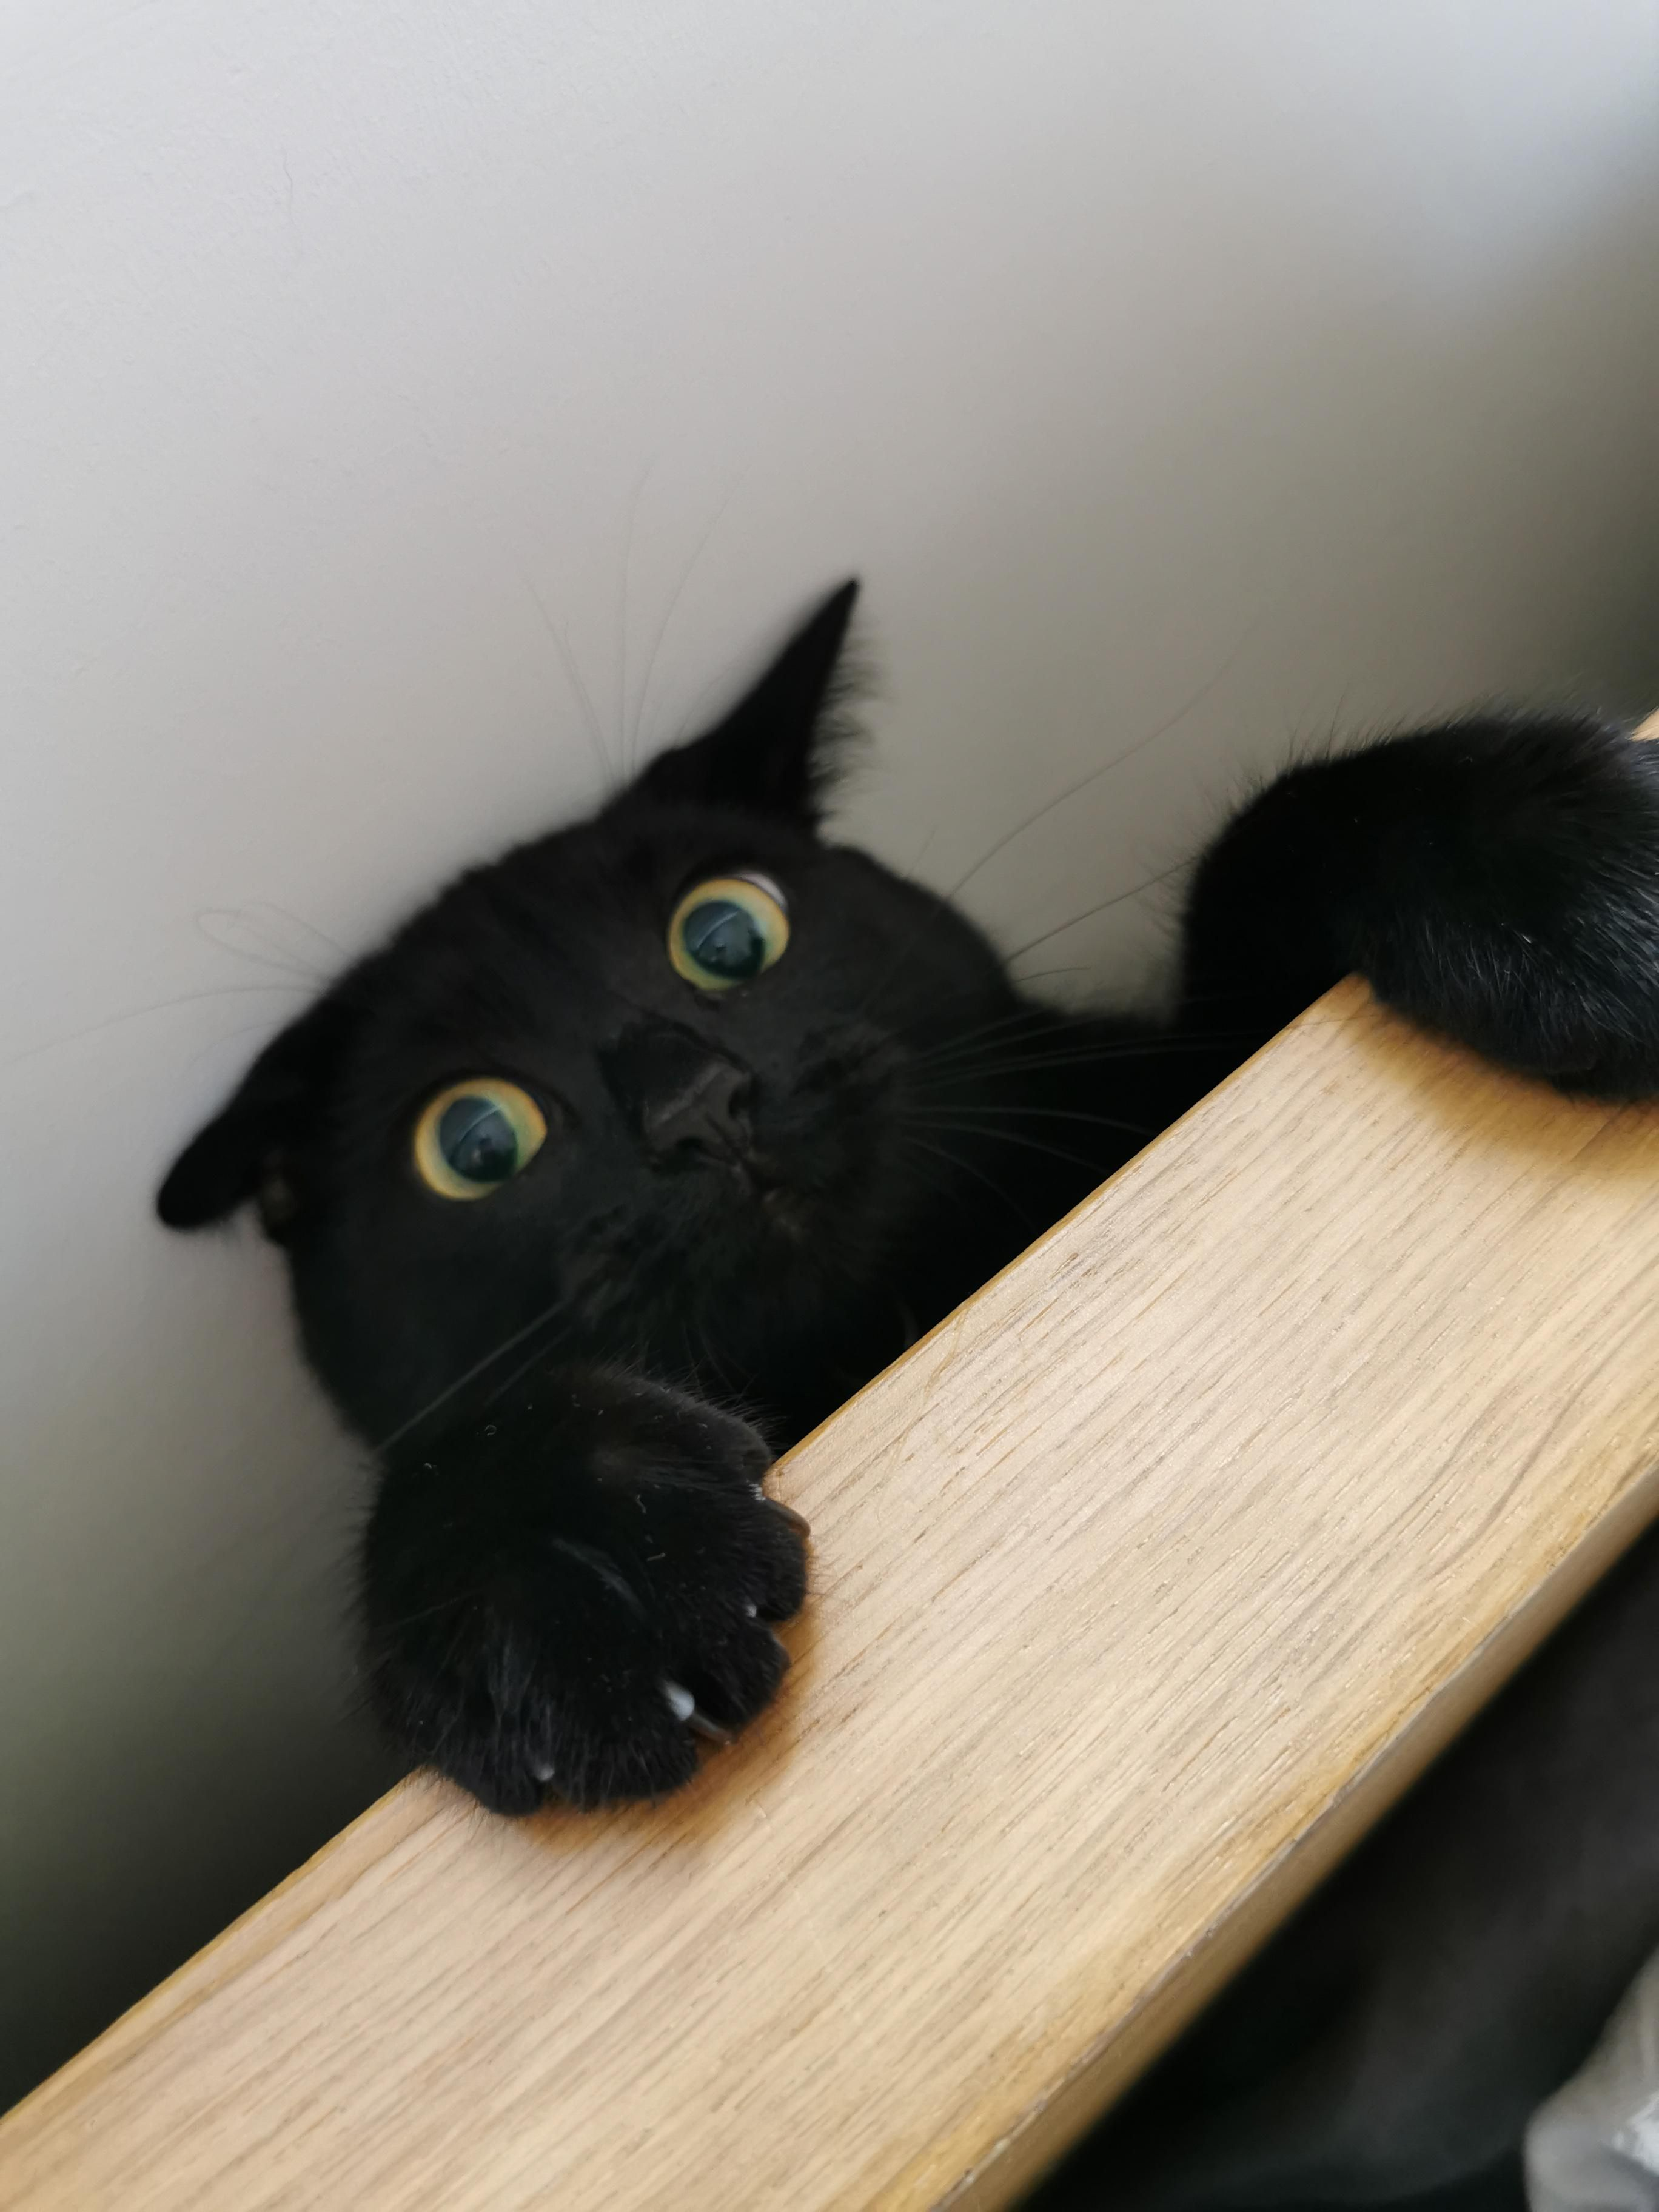 This Is The Face Of Bad Decision Making She Got Stuck Behind The Bed Aww Cat Cats Cute Funny Animals Cute Baby Animals